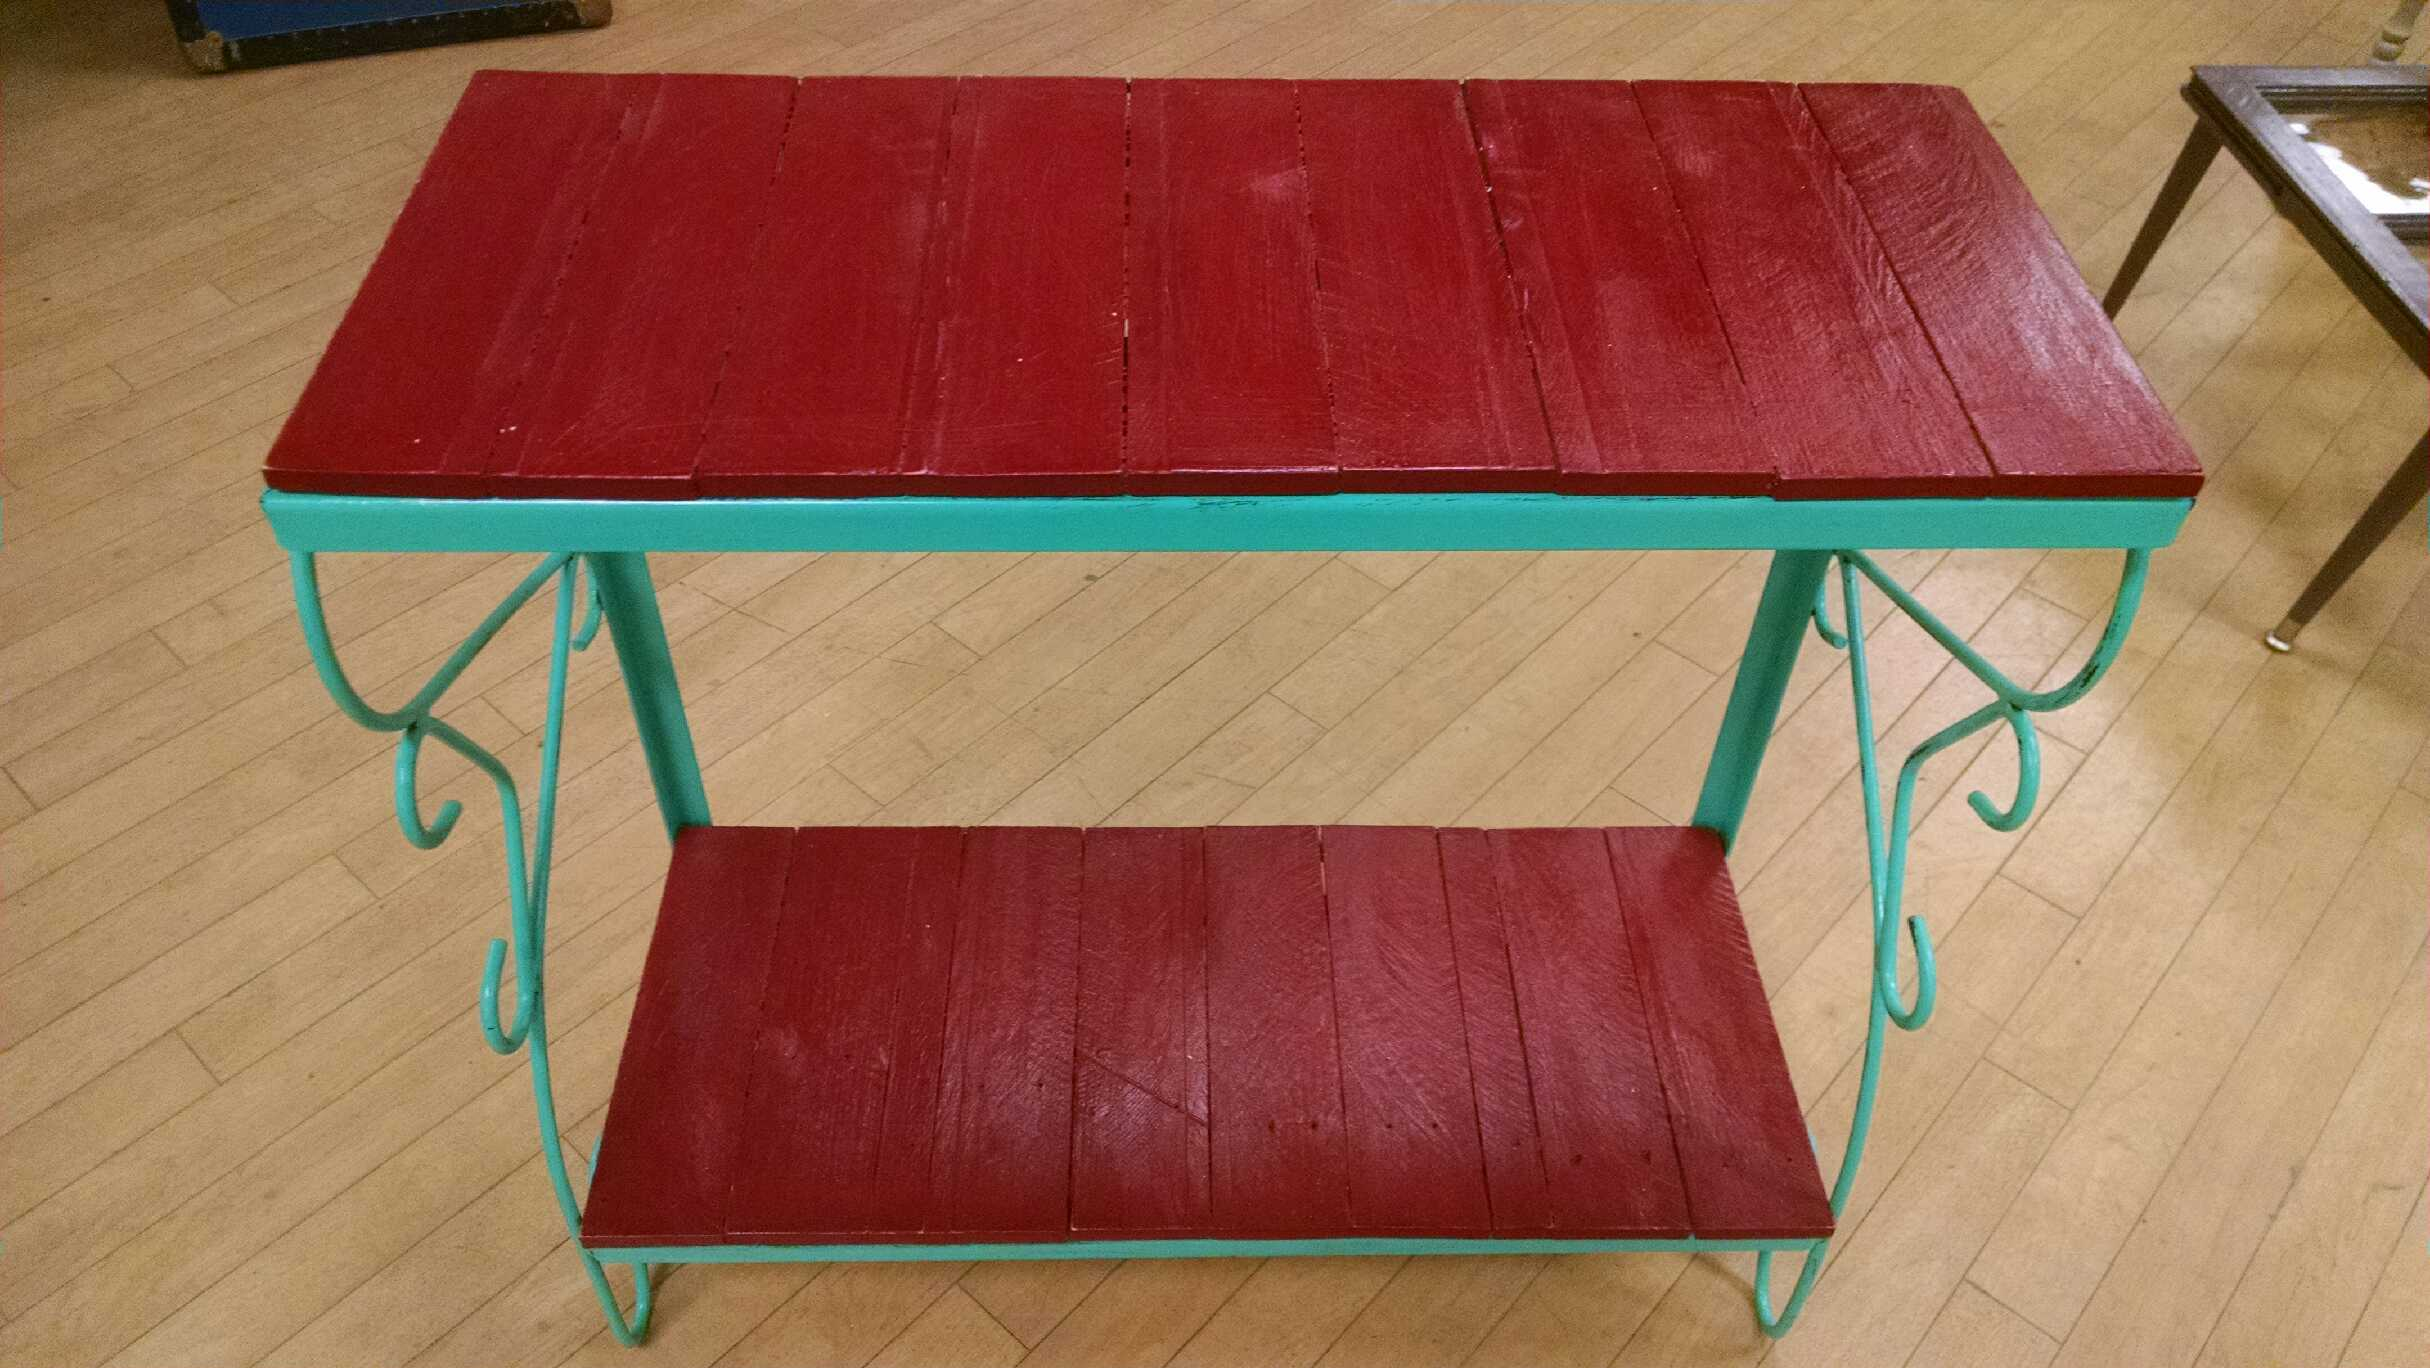 Teal & red sofa table.jpg